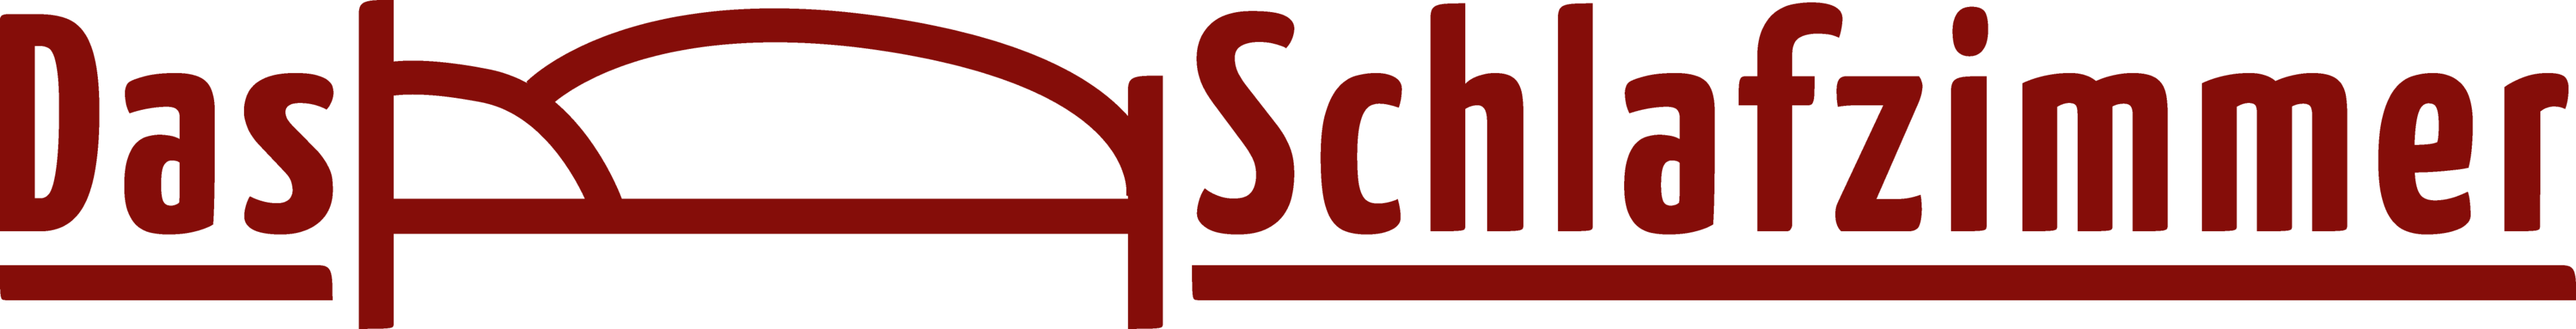 schlafzimmer logo rot PNG.png